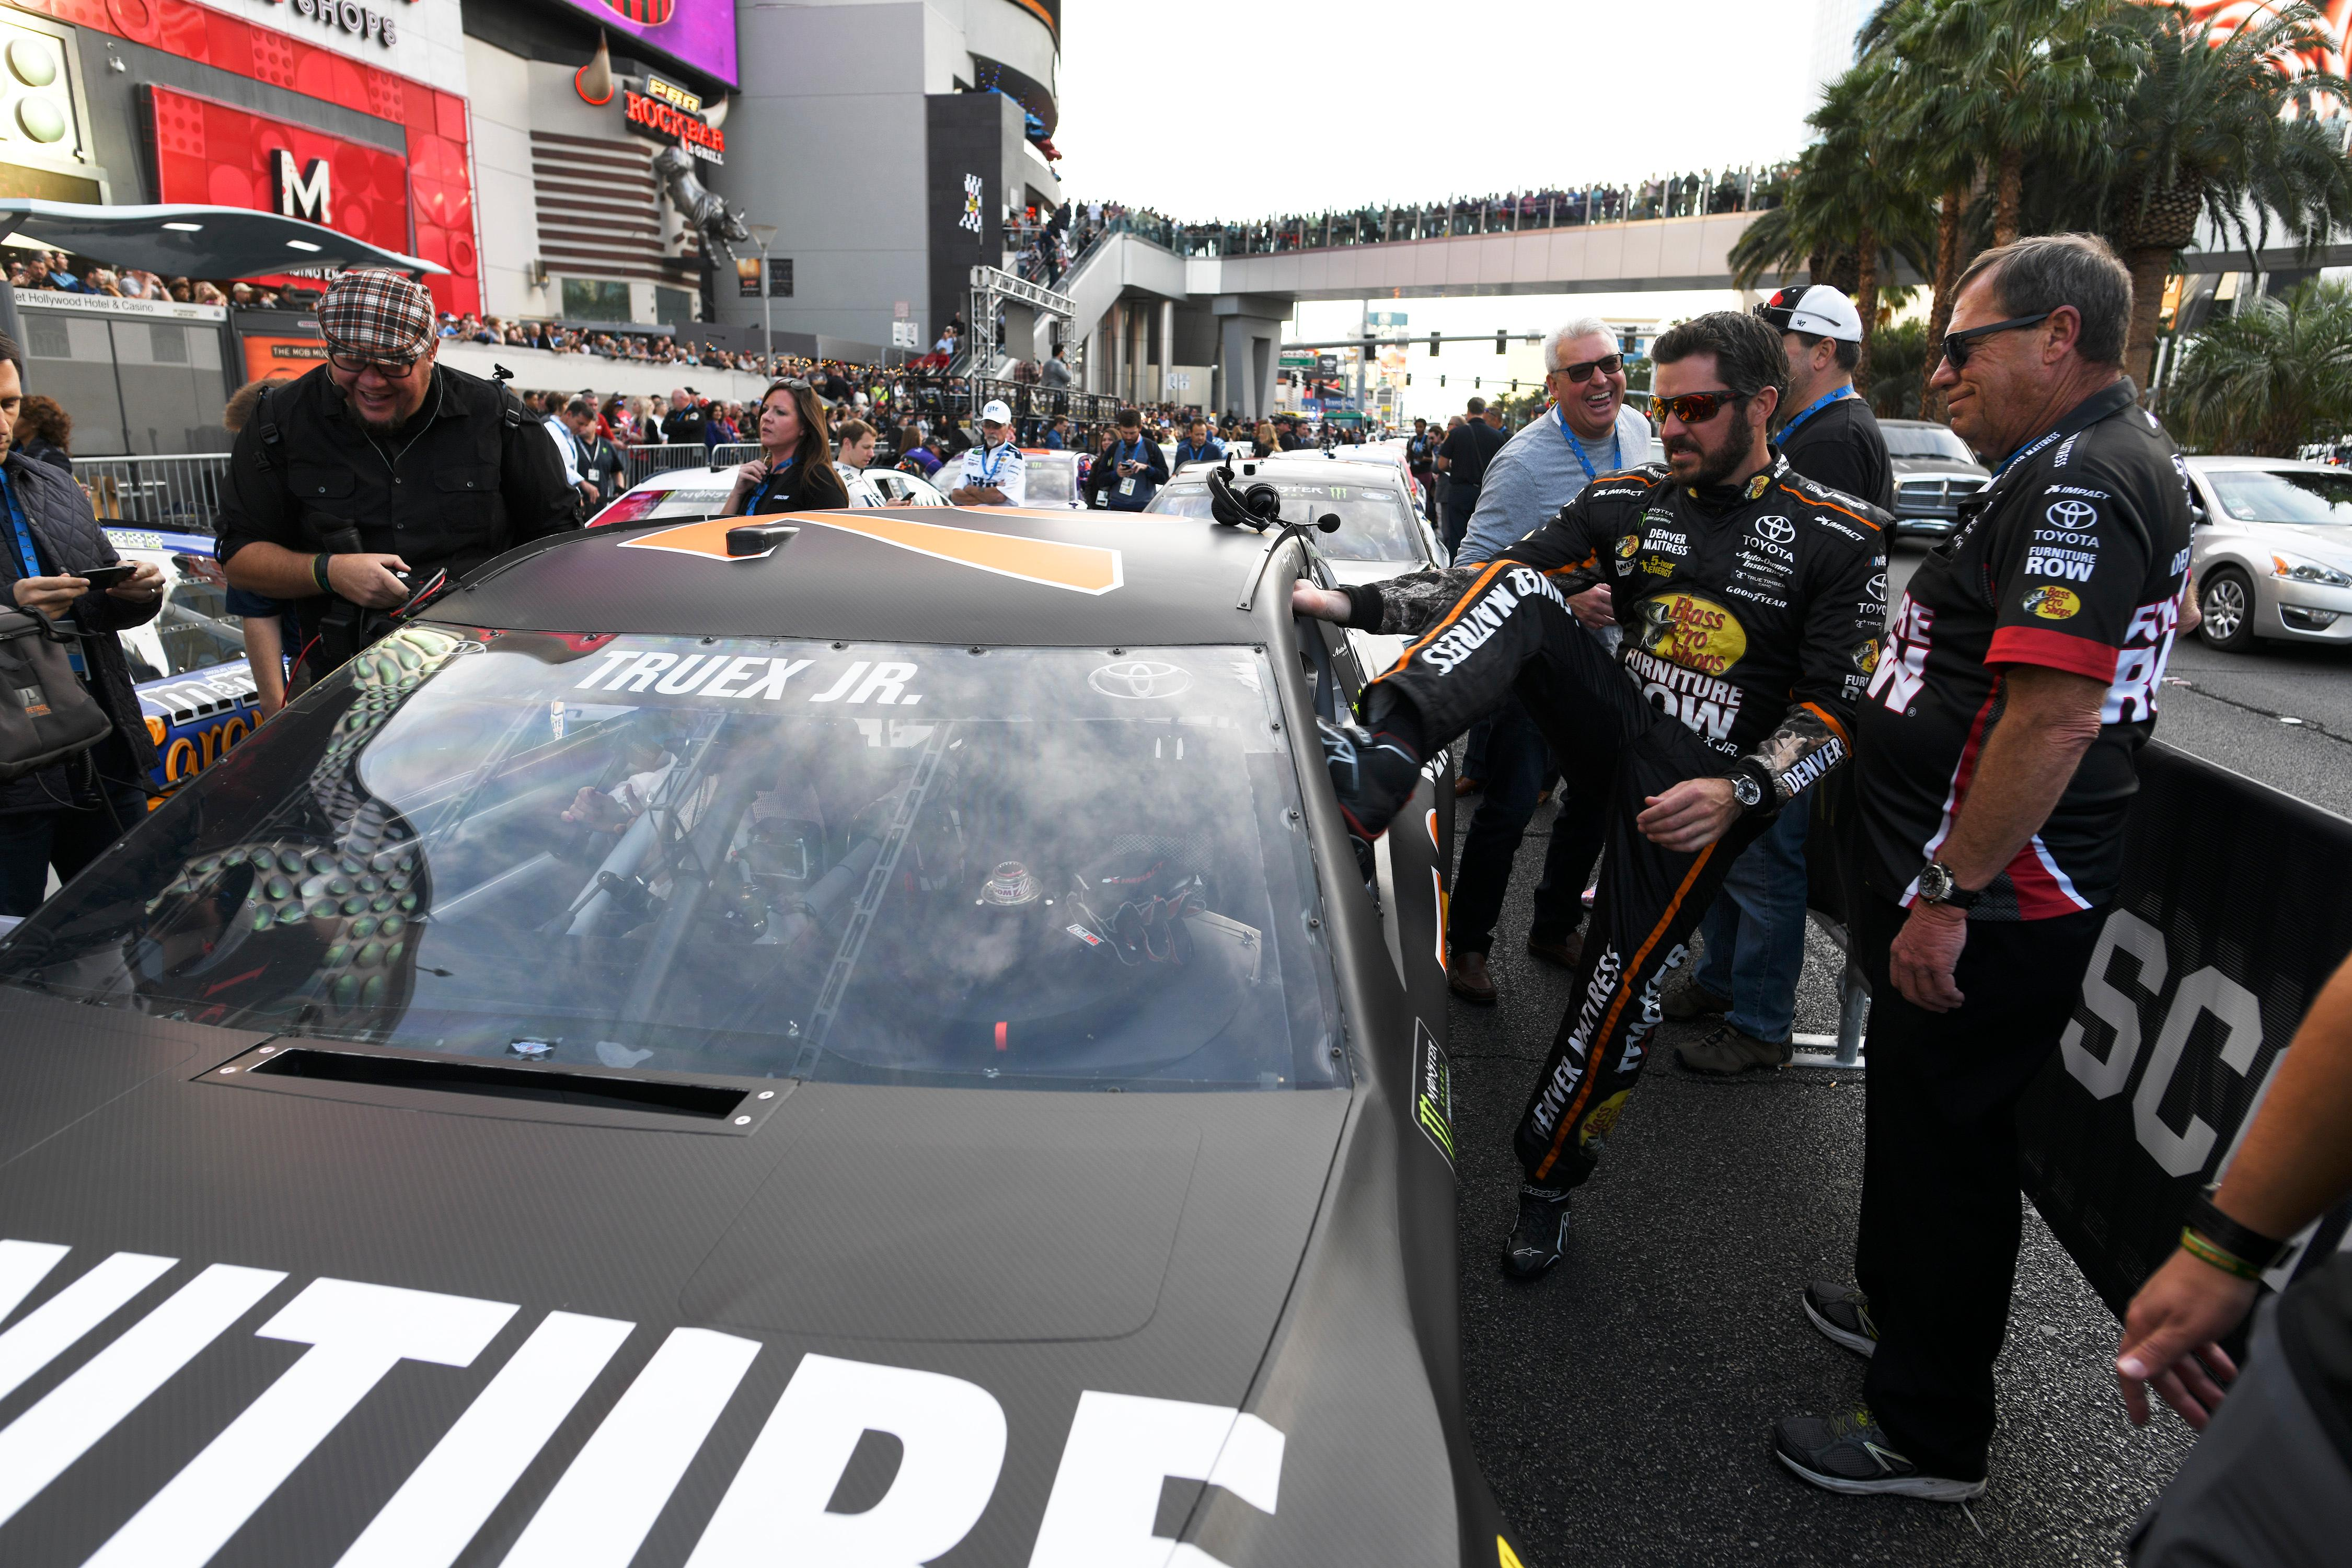 Monster Energy NASCAR Cup Series driver Martin Truex Jr. hops into his car during the NASCAR Victory Lap on the Las Vegas Strip being held as part of Champions Week Wednesday, November 29, 2017. CREDIT: Sam Morris/Las Vegas News Bureau